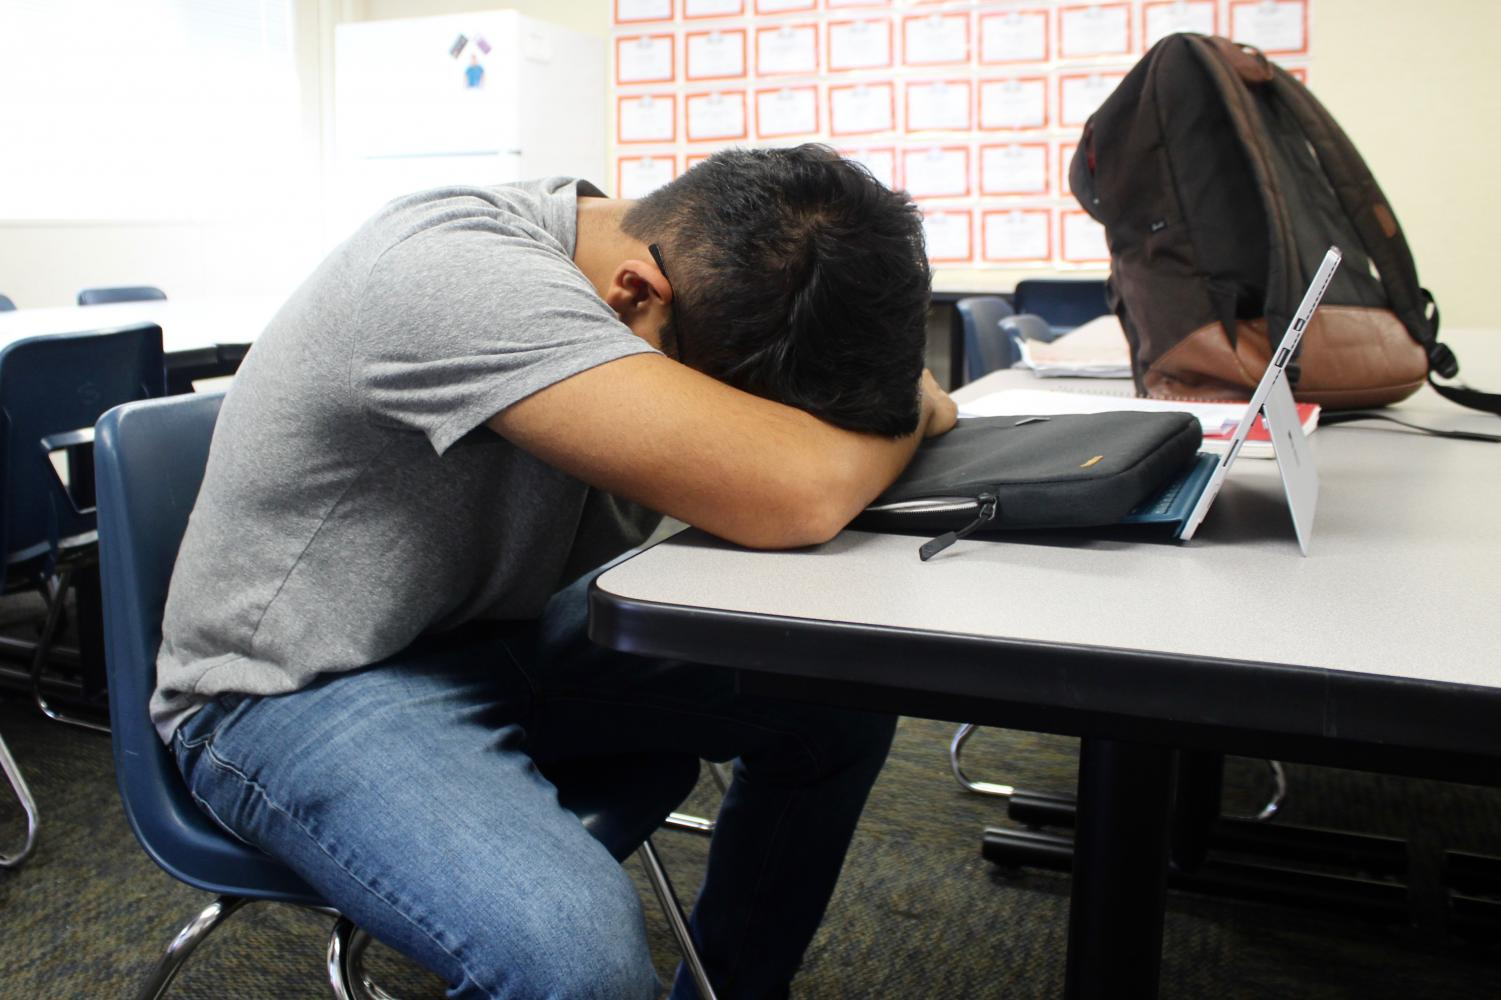 MCHS student sleeps in class.